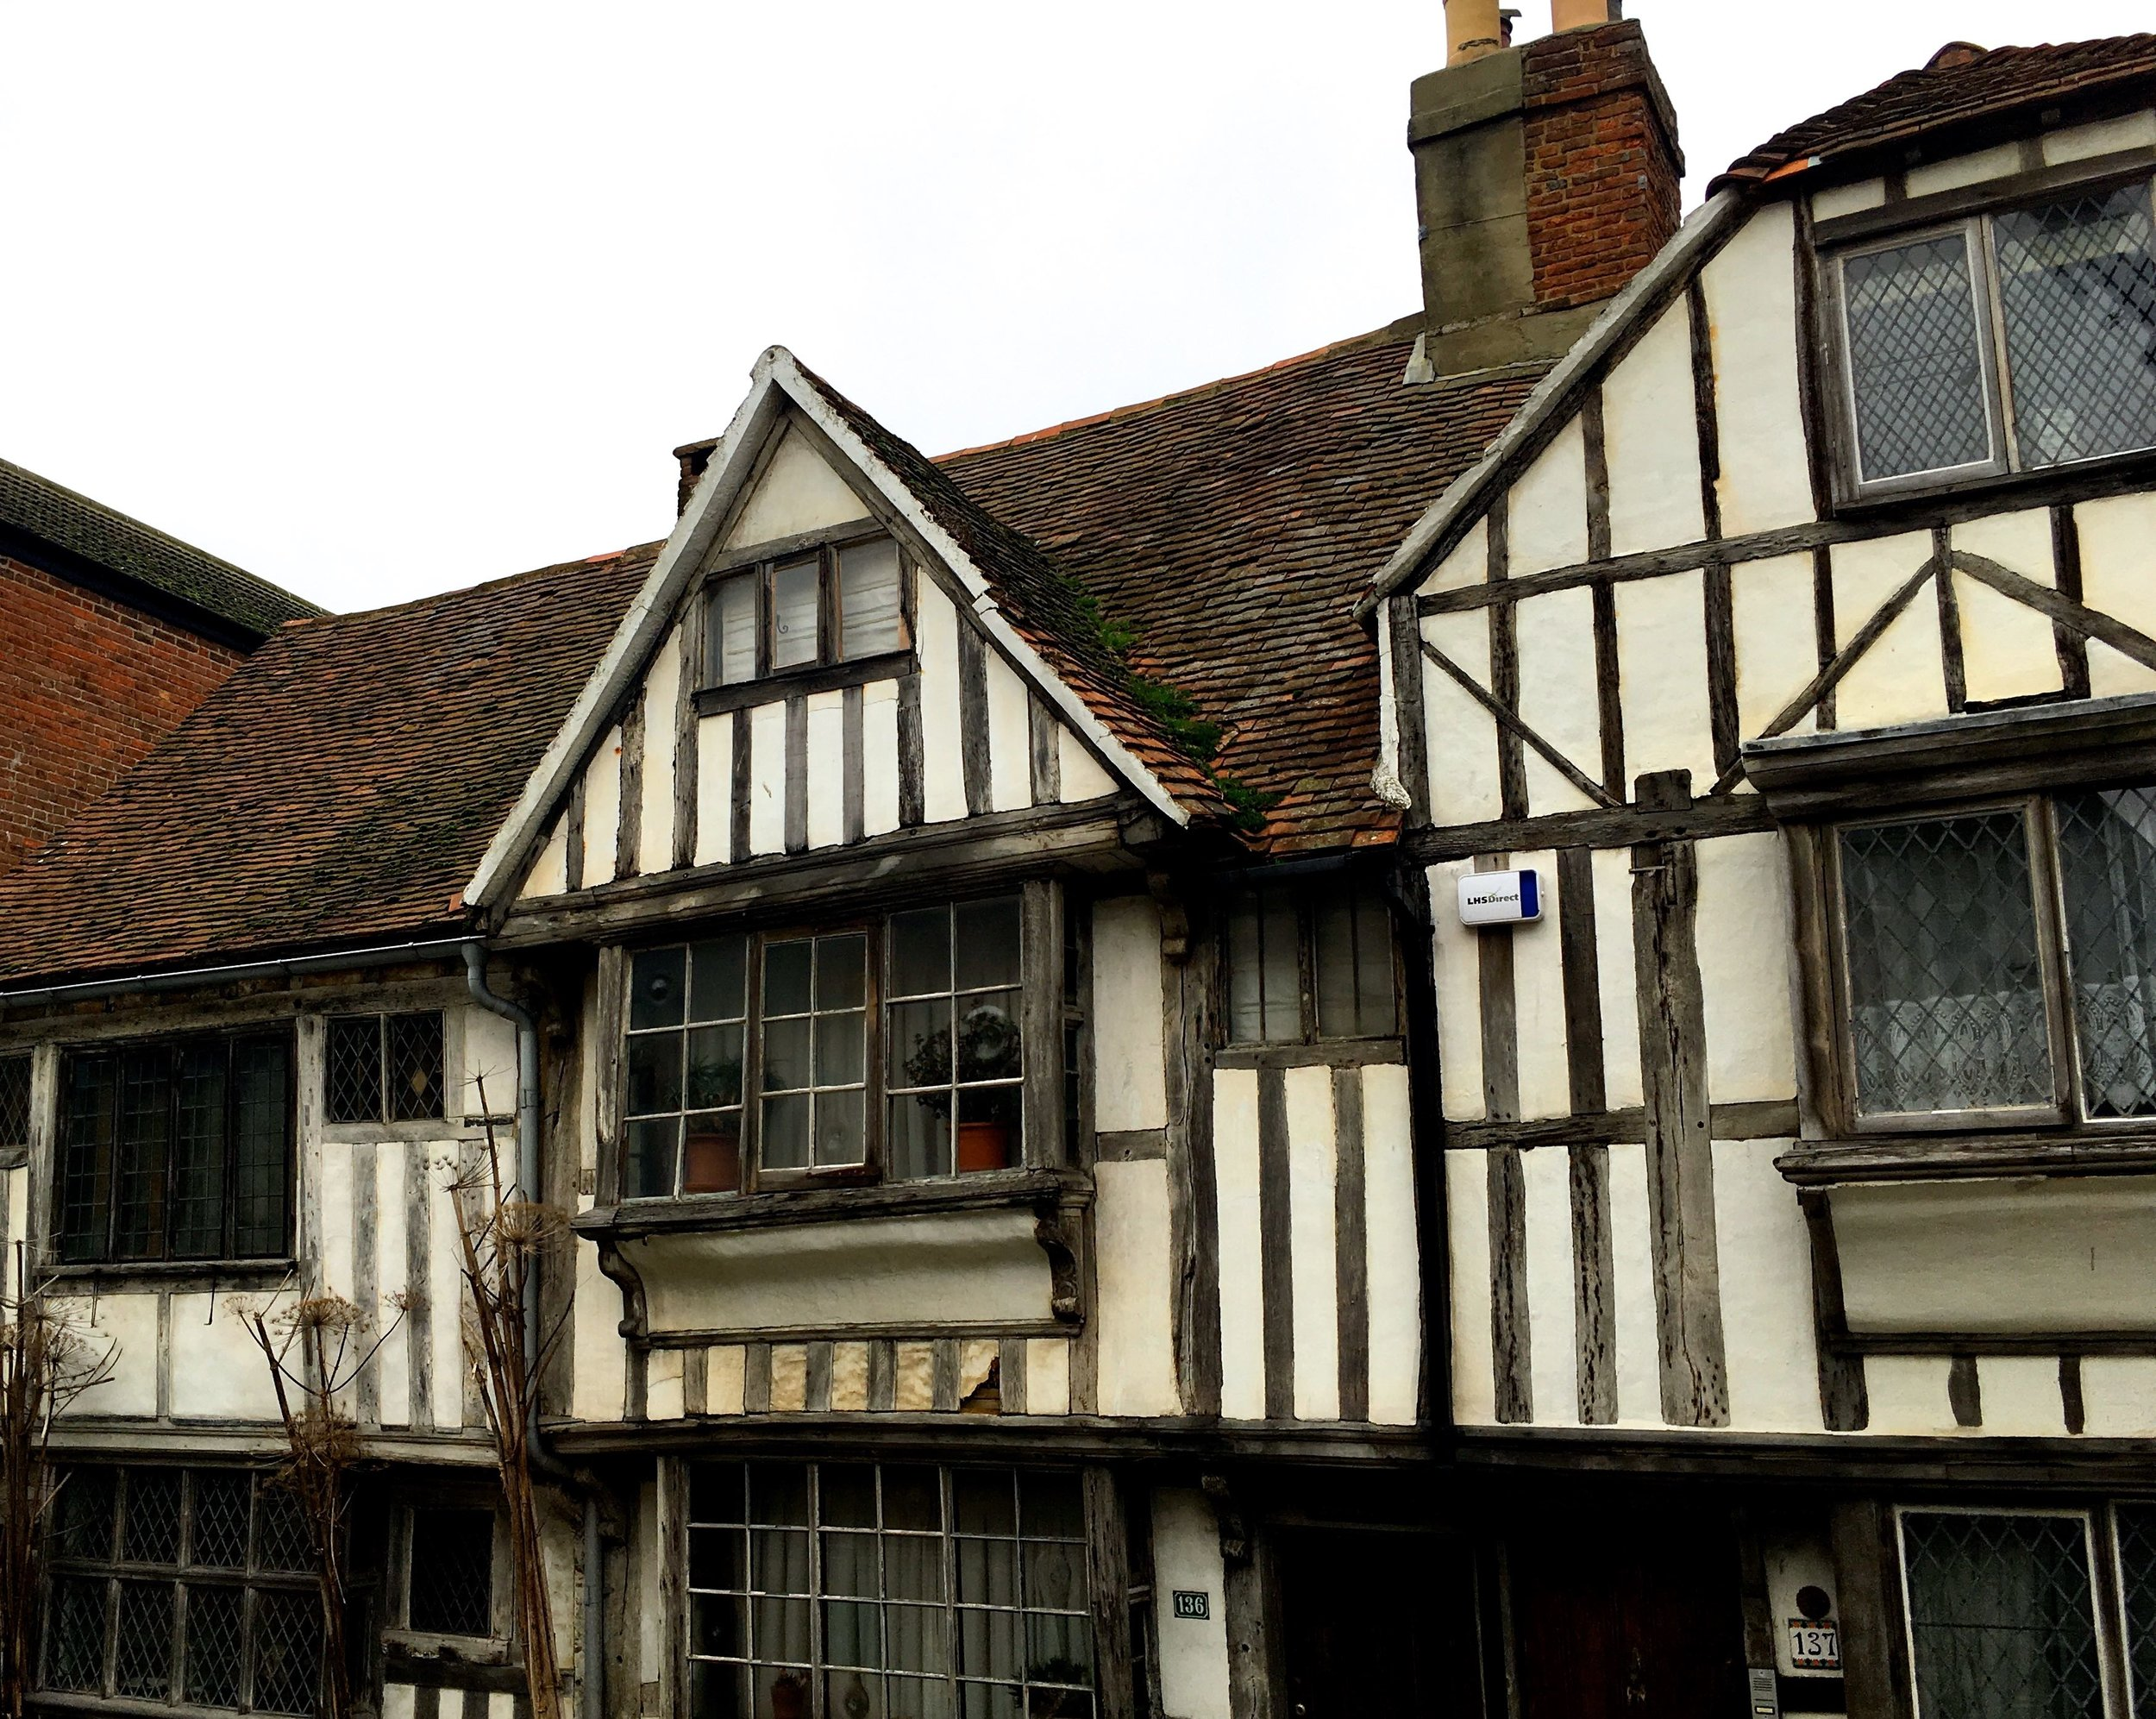 One of the timber framed buildings completely fascinated me